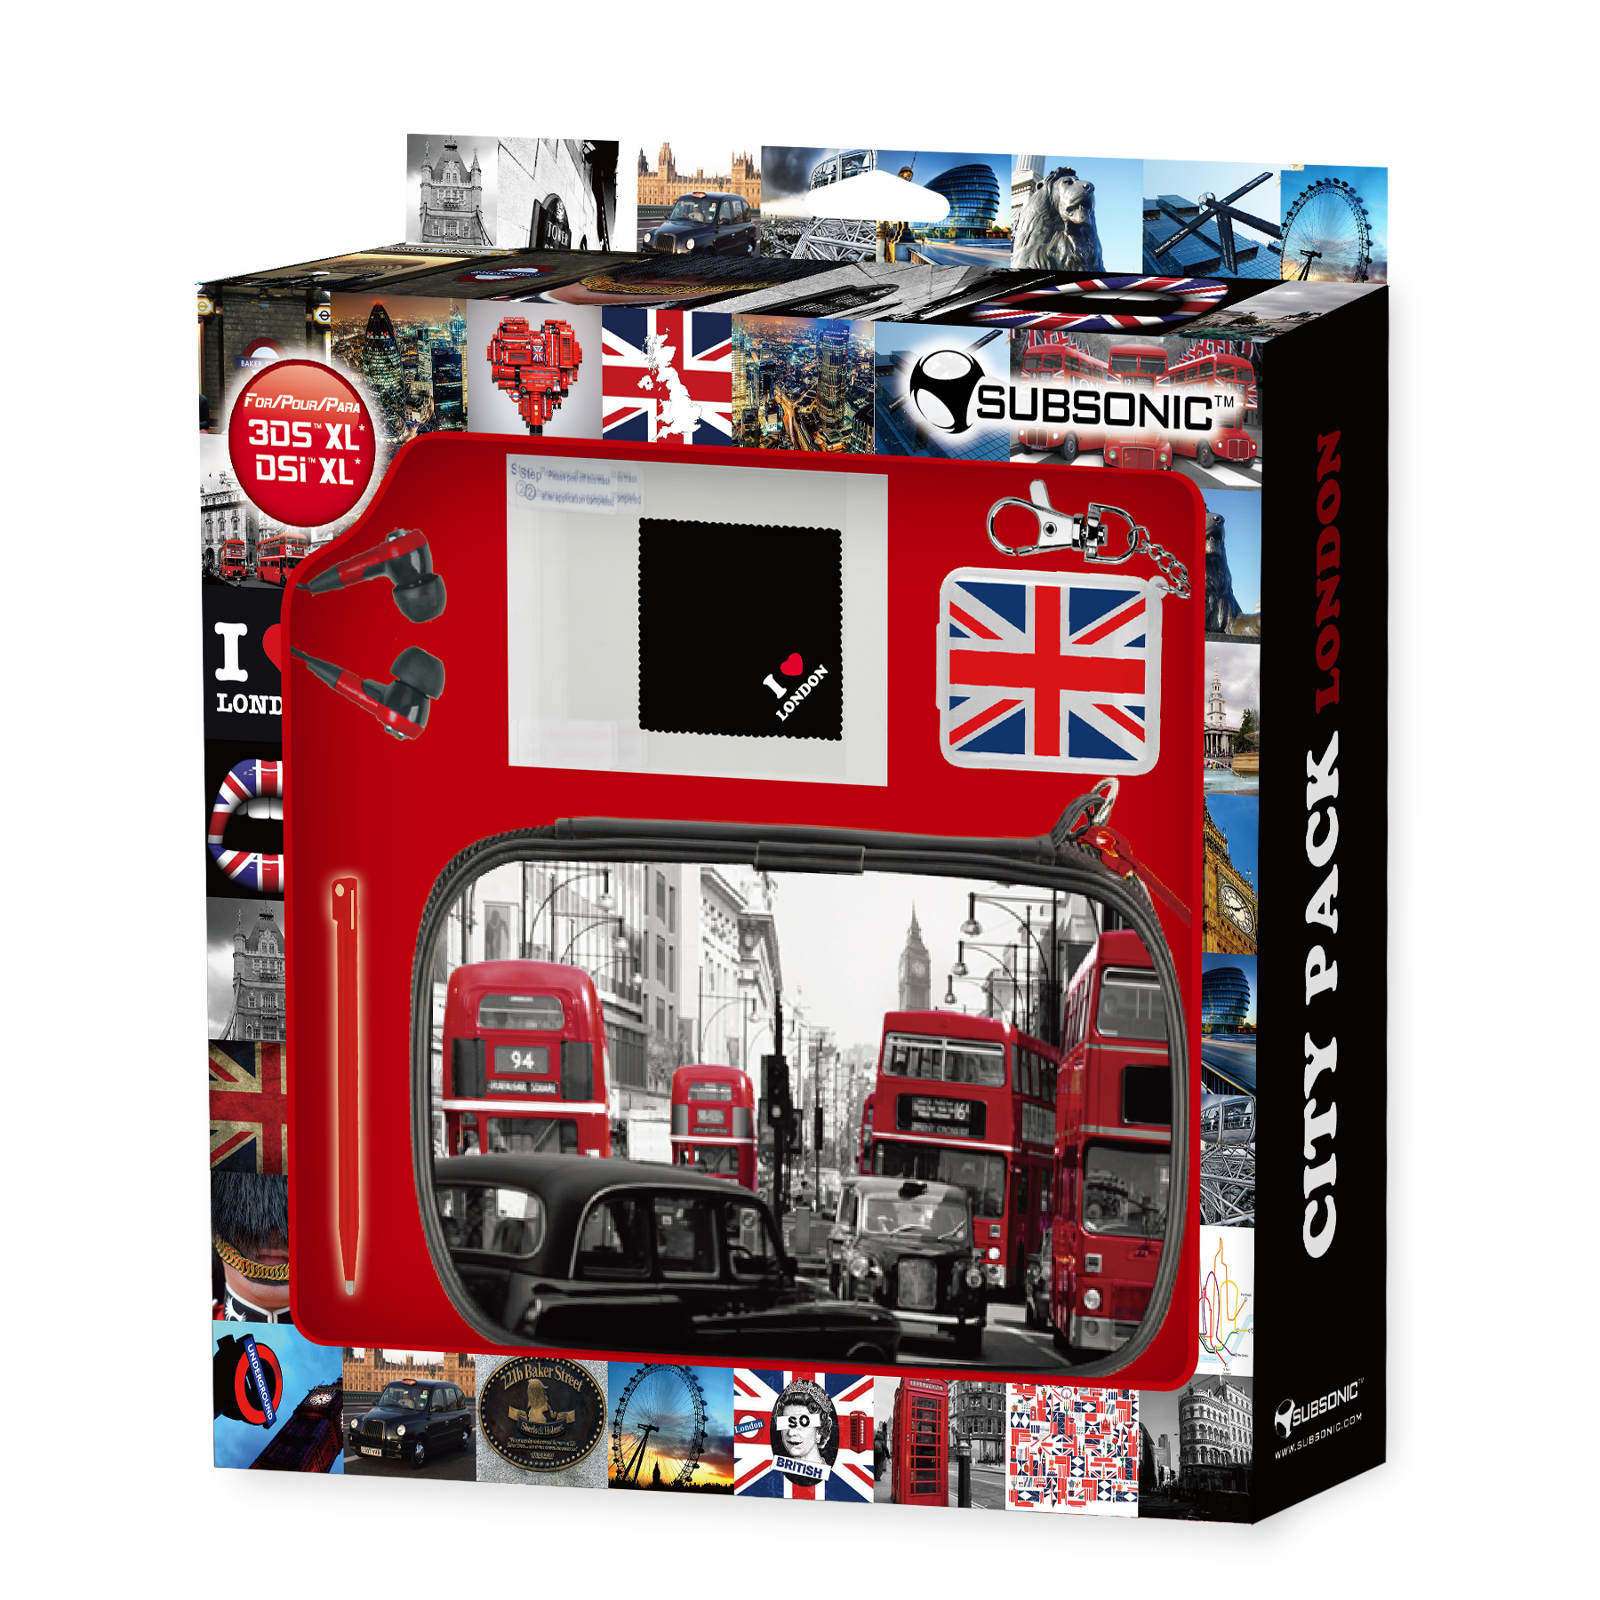 Subsonic london city pack xl nintendo 3ds xl et dsi xl for Housse 2ds bigben